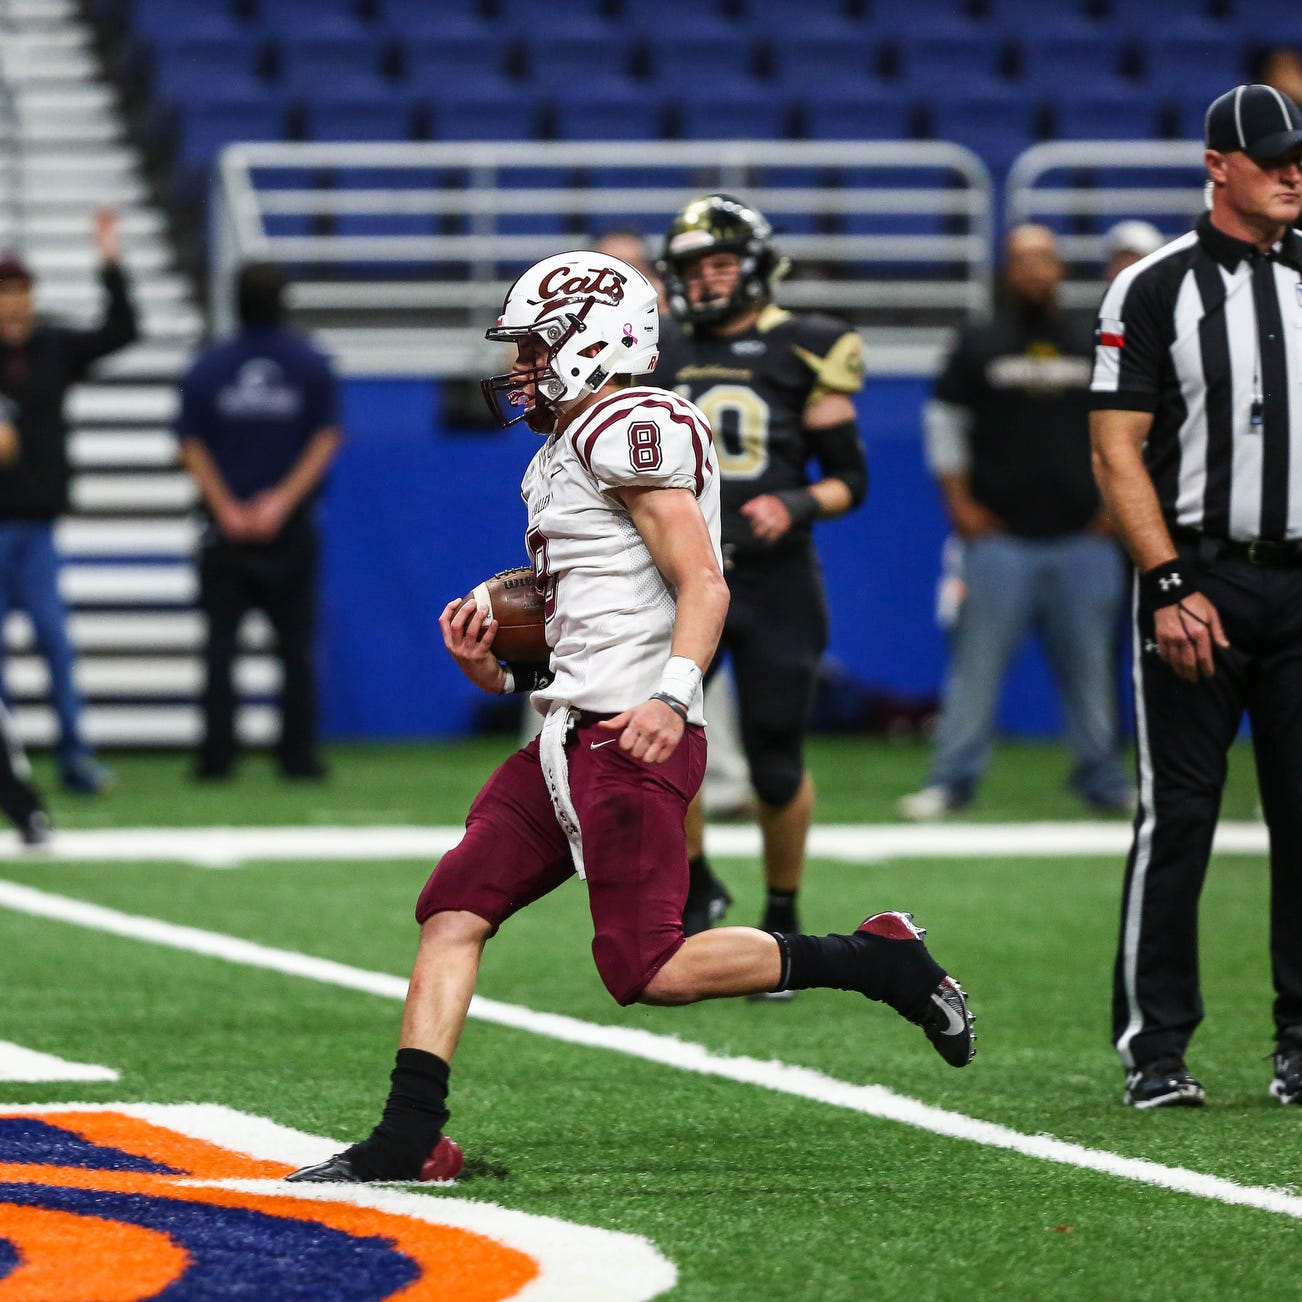 Texas High School Football Playoffs: Calallen vs. Fort Bend Marshall Recap